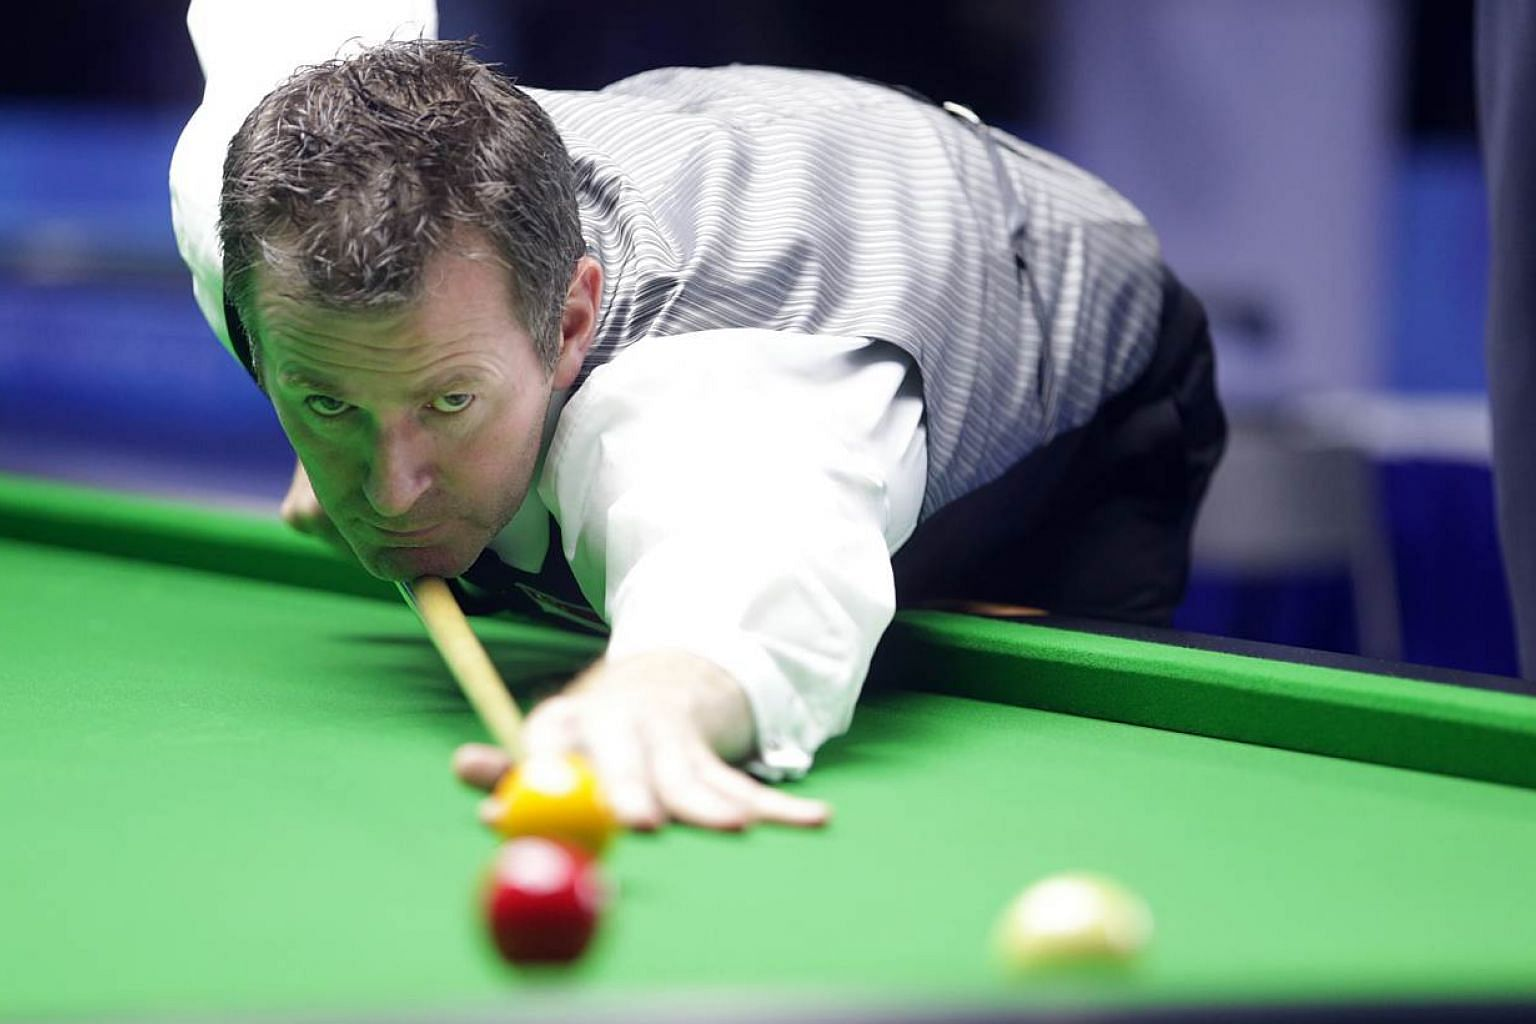 Gilchrist (pictured), who has already won the English billiards singles (500) and English billiards singles titles in this SEA Games, will try to complete his hat-trick in the English billiards team event on Wednesday. -- PHOTO: ZAOBAO